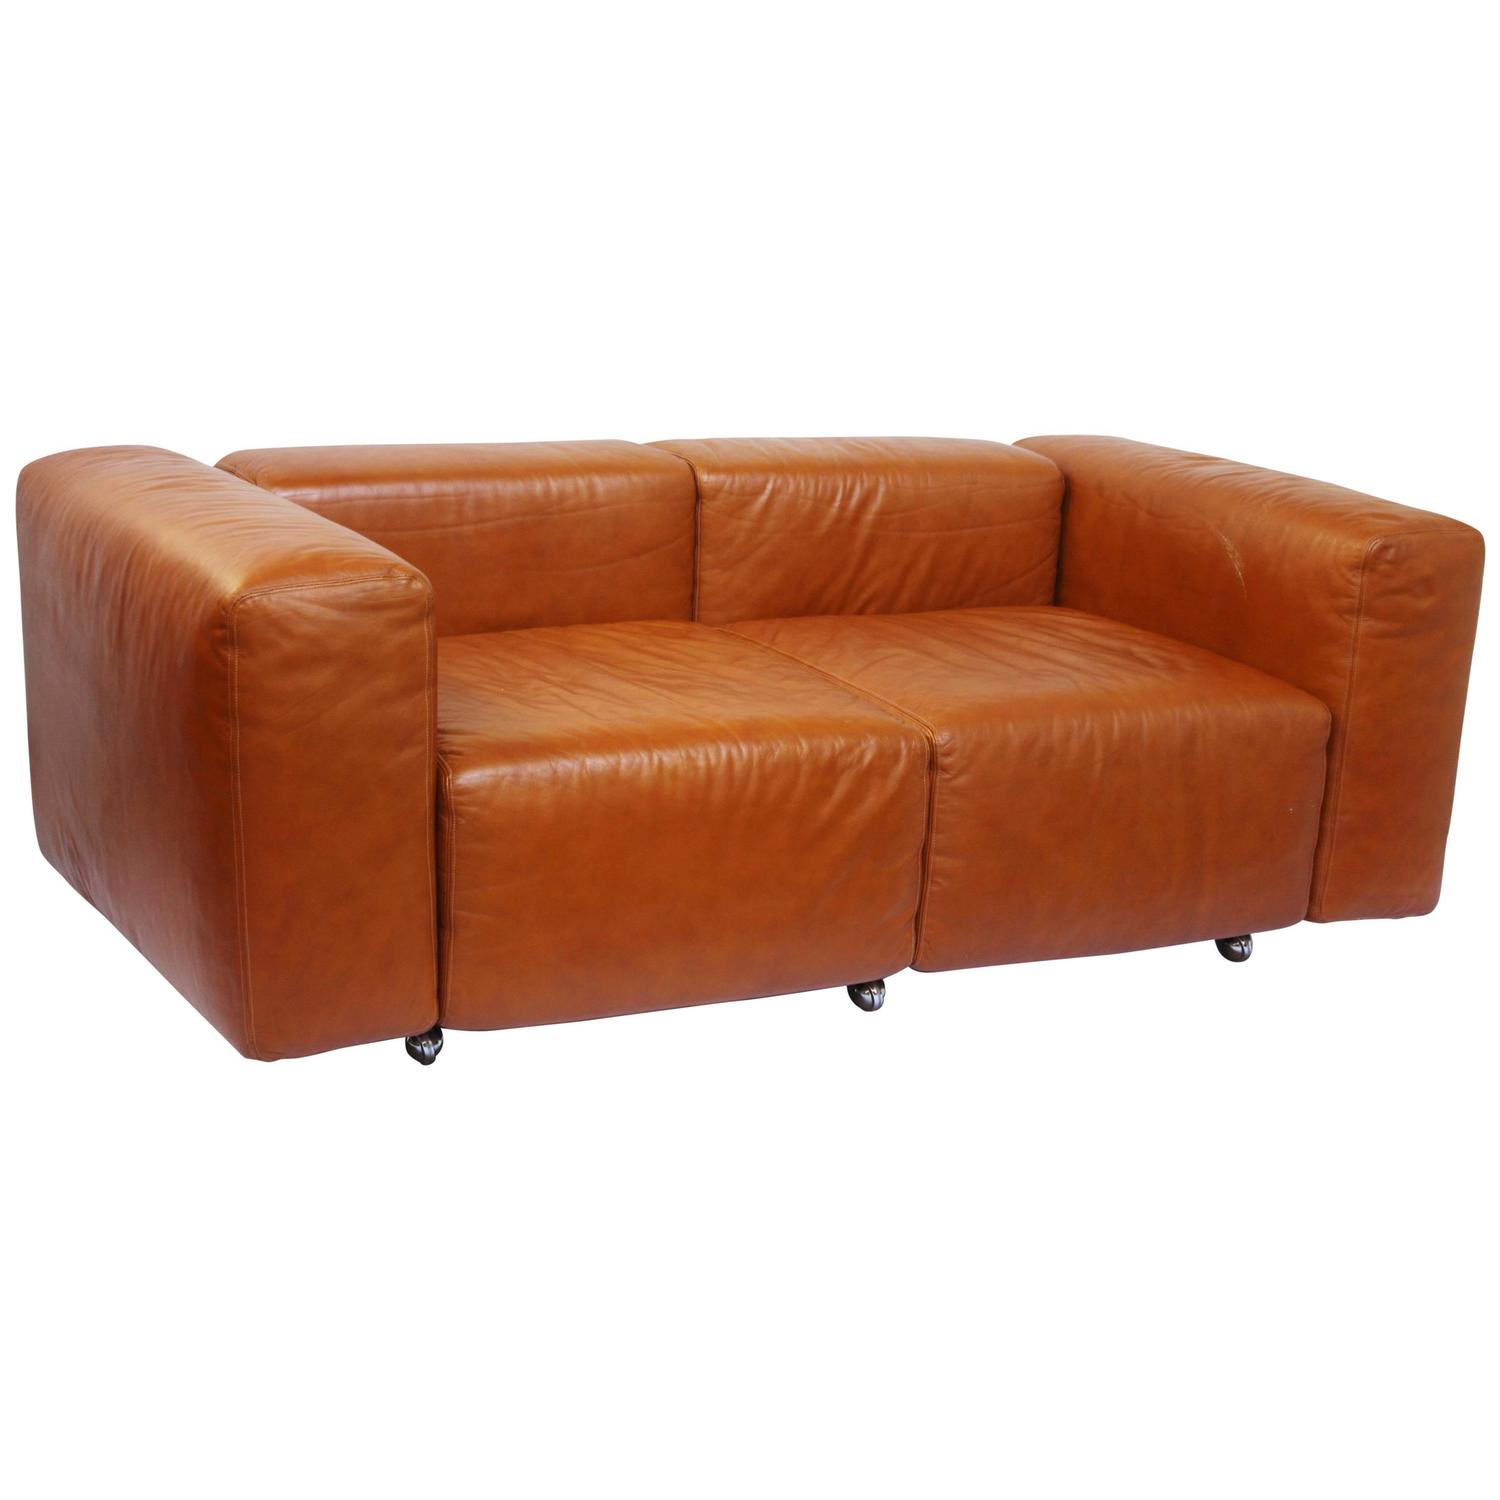 Leather Modular Loveseat Small Sofa By Harvey Probber At 1stdibs